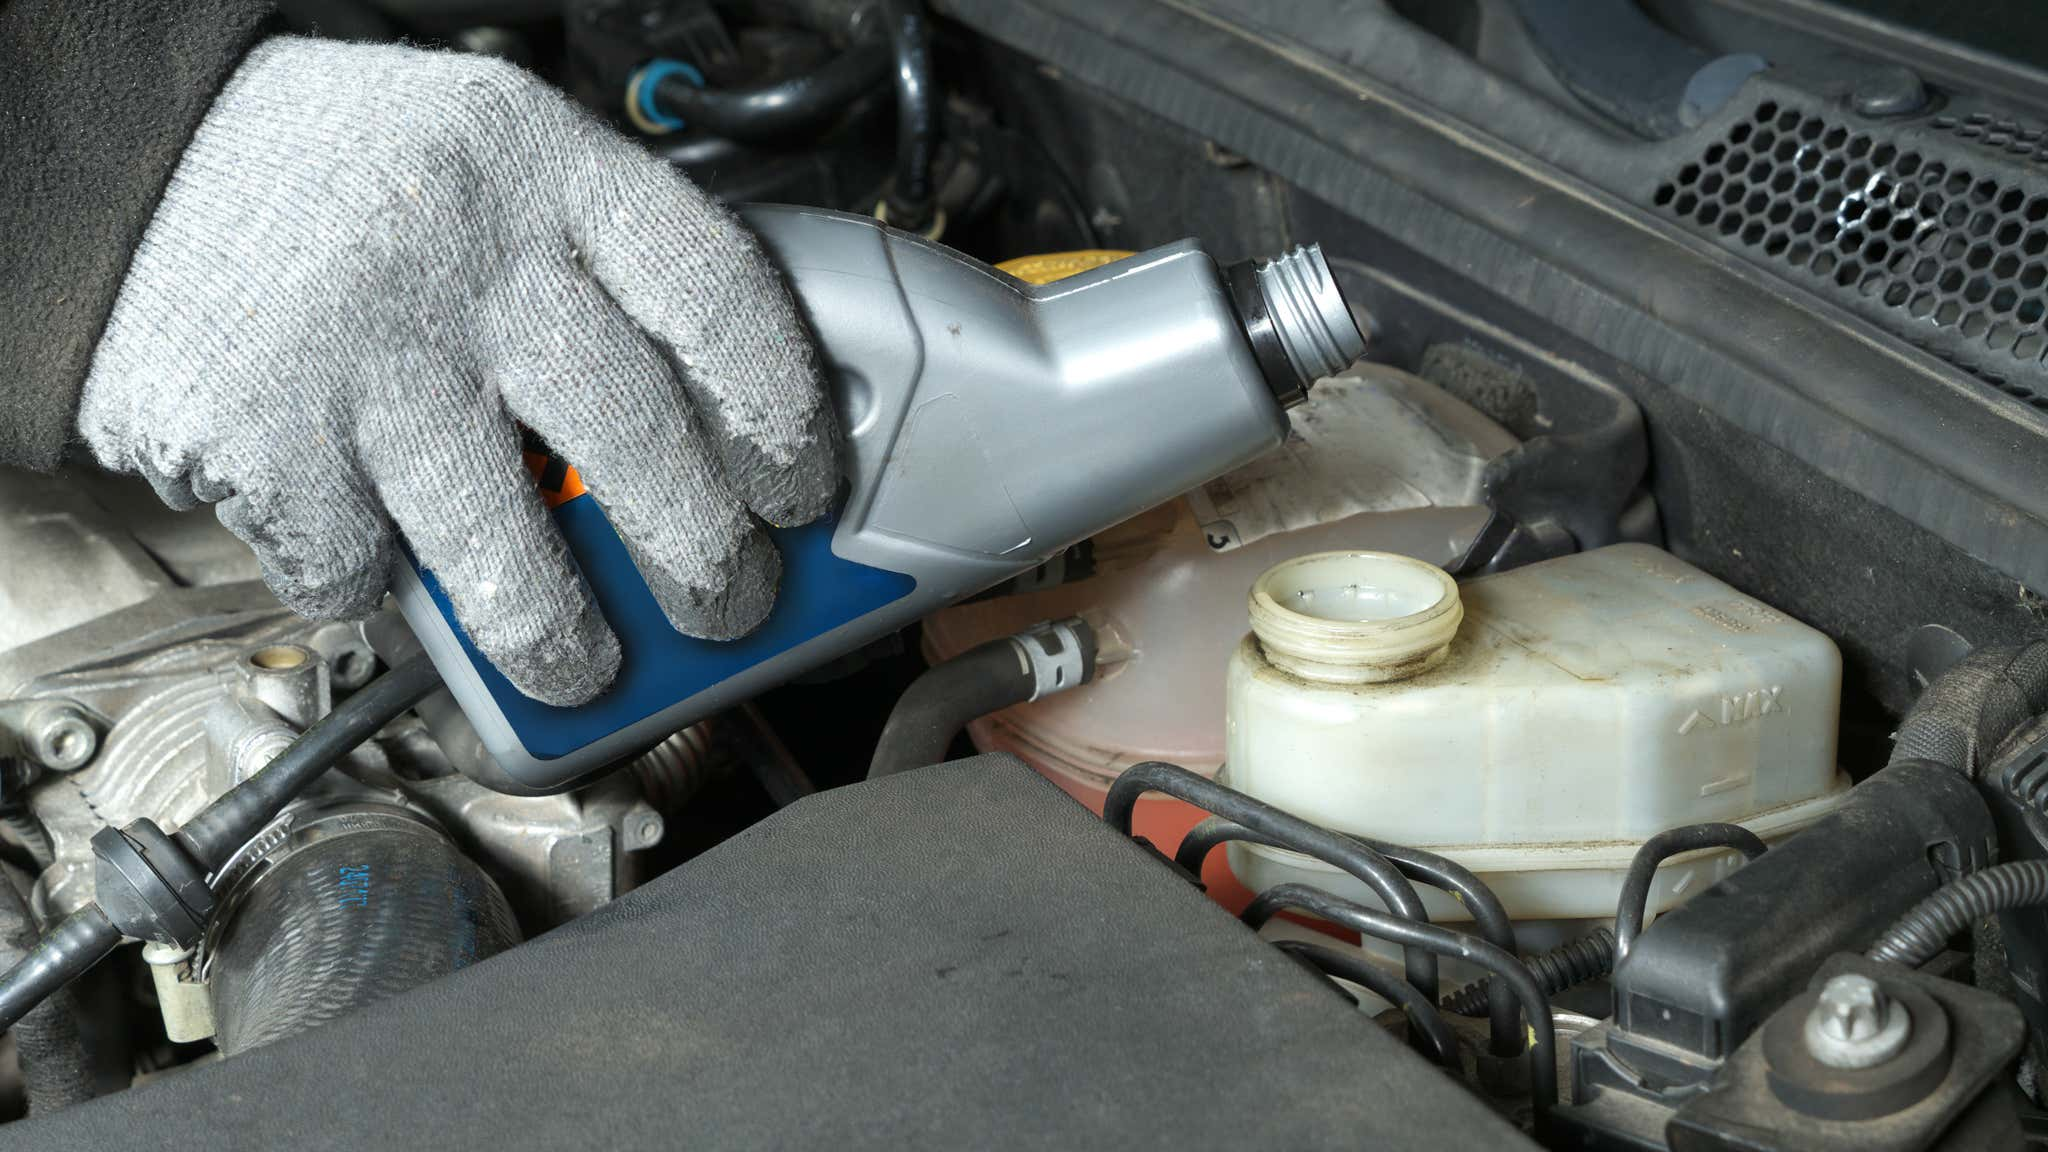 Brake fluid is cheap and readily available.